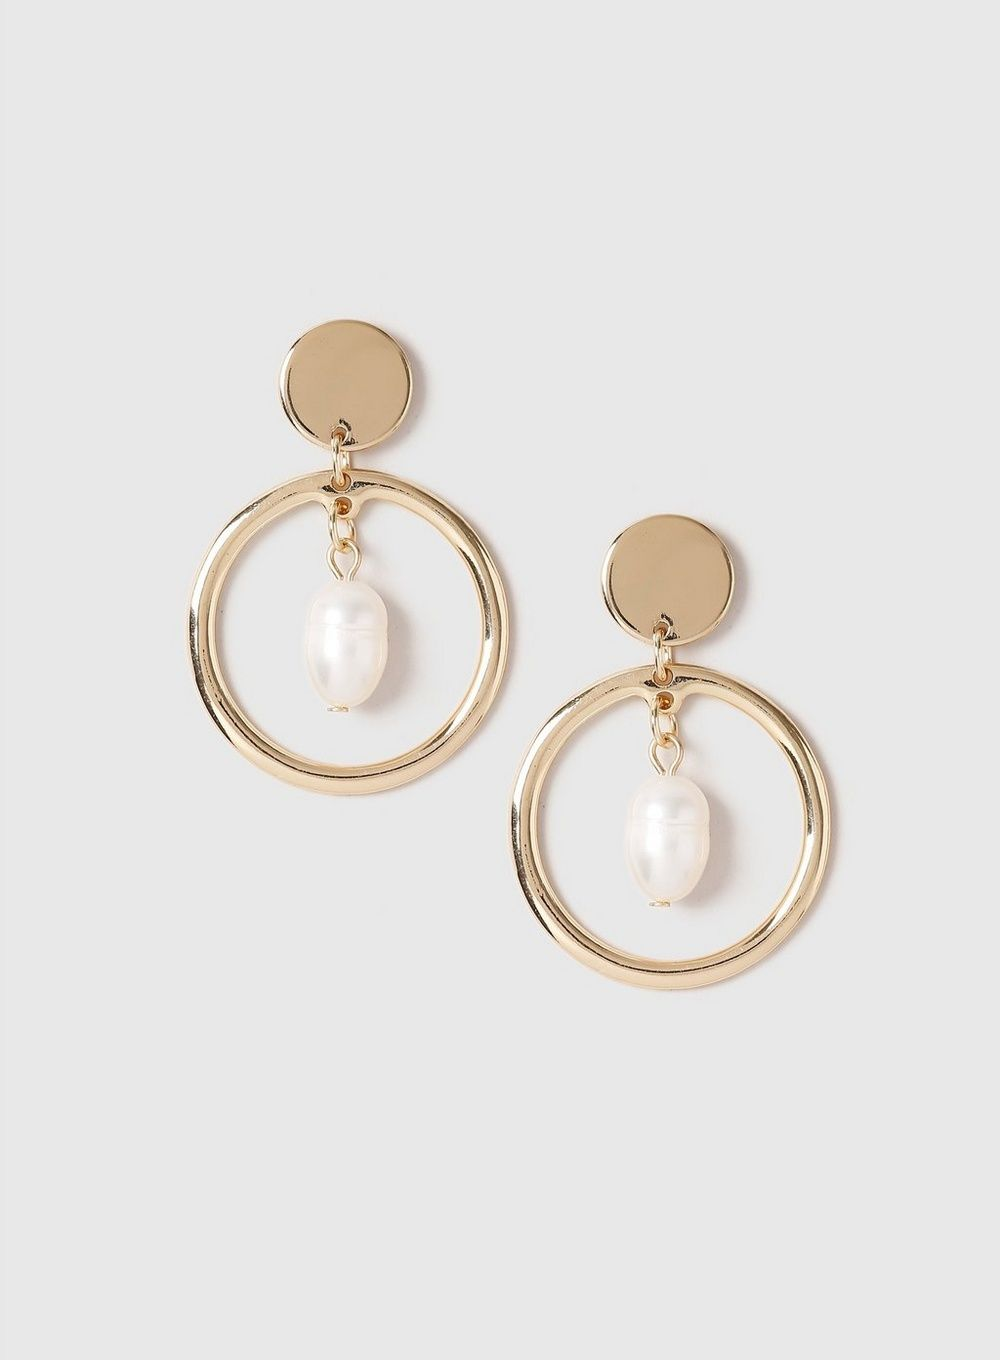 745a1c59b Gold Circle Drop Pearl Earrings - View All New In - New In - Dorothy Perkins  United States